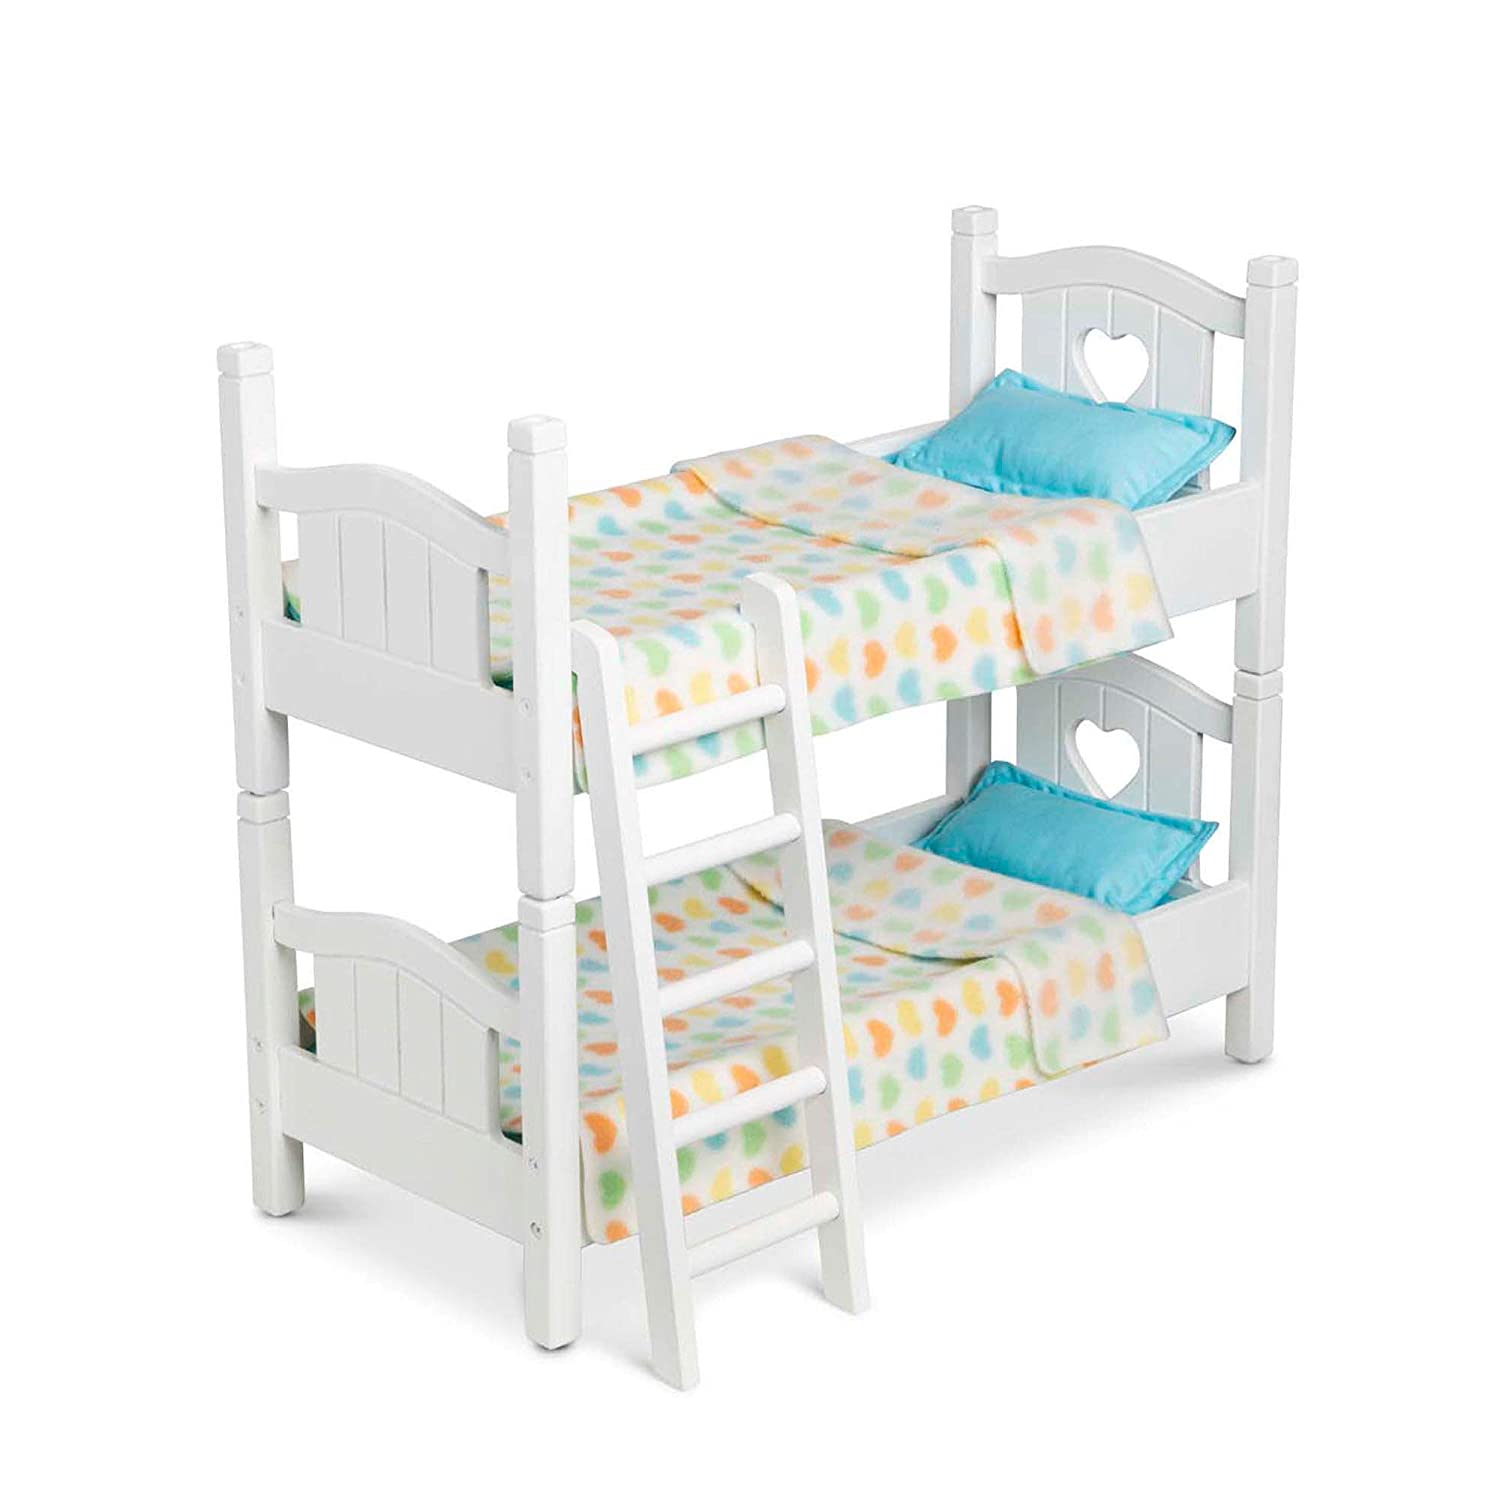 Melissa & Doug Mine to Love Wooden Play Bunk Bed for Dolls, Stuffed Animals - White (2 Beds, Assembled and Stacked, Great Gift for Girls and Boys - Best for 3, 4, 5 Year Olds and Up)